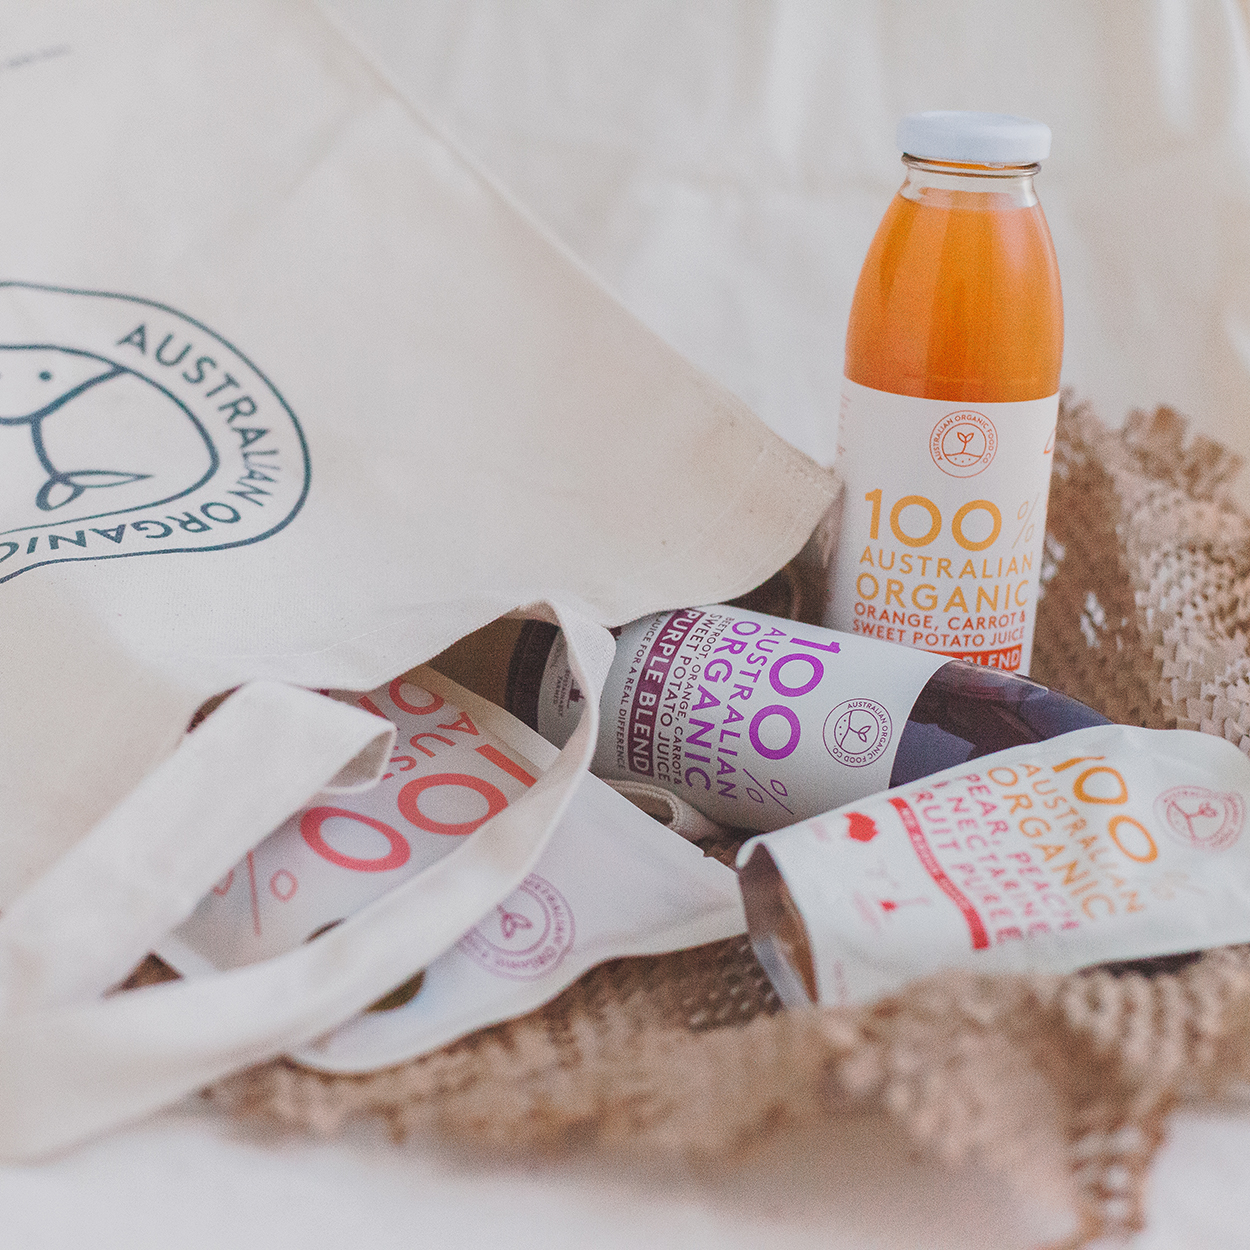 Australian Organic Food Co juice and puree